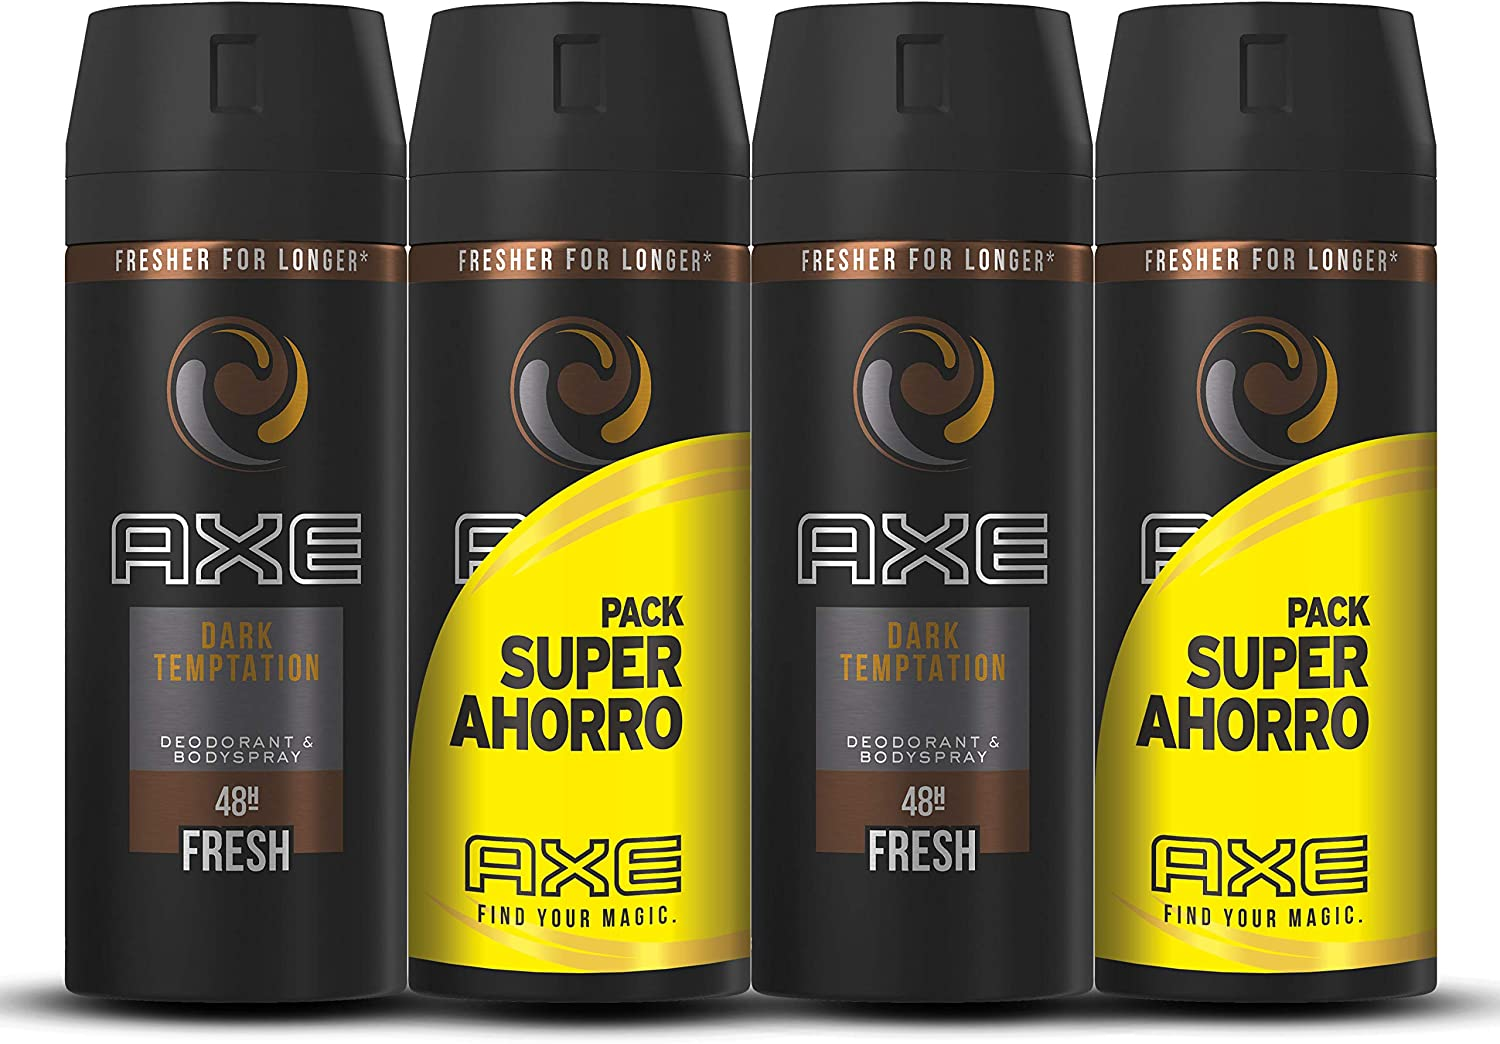 Axe Dark Temptation Pack Duplo Ahorro - 2 Paquetes de 2 x 150 ml ...